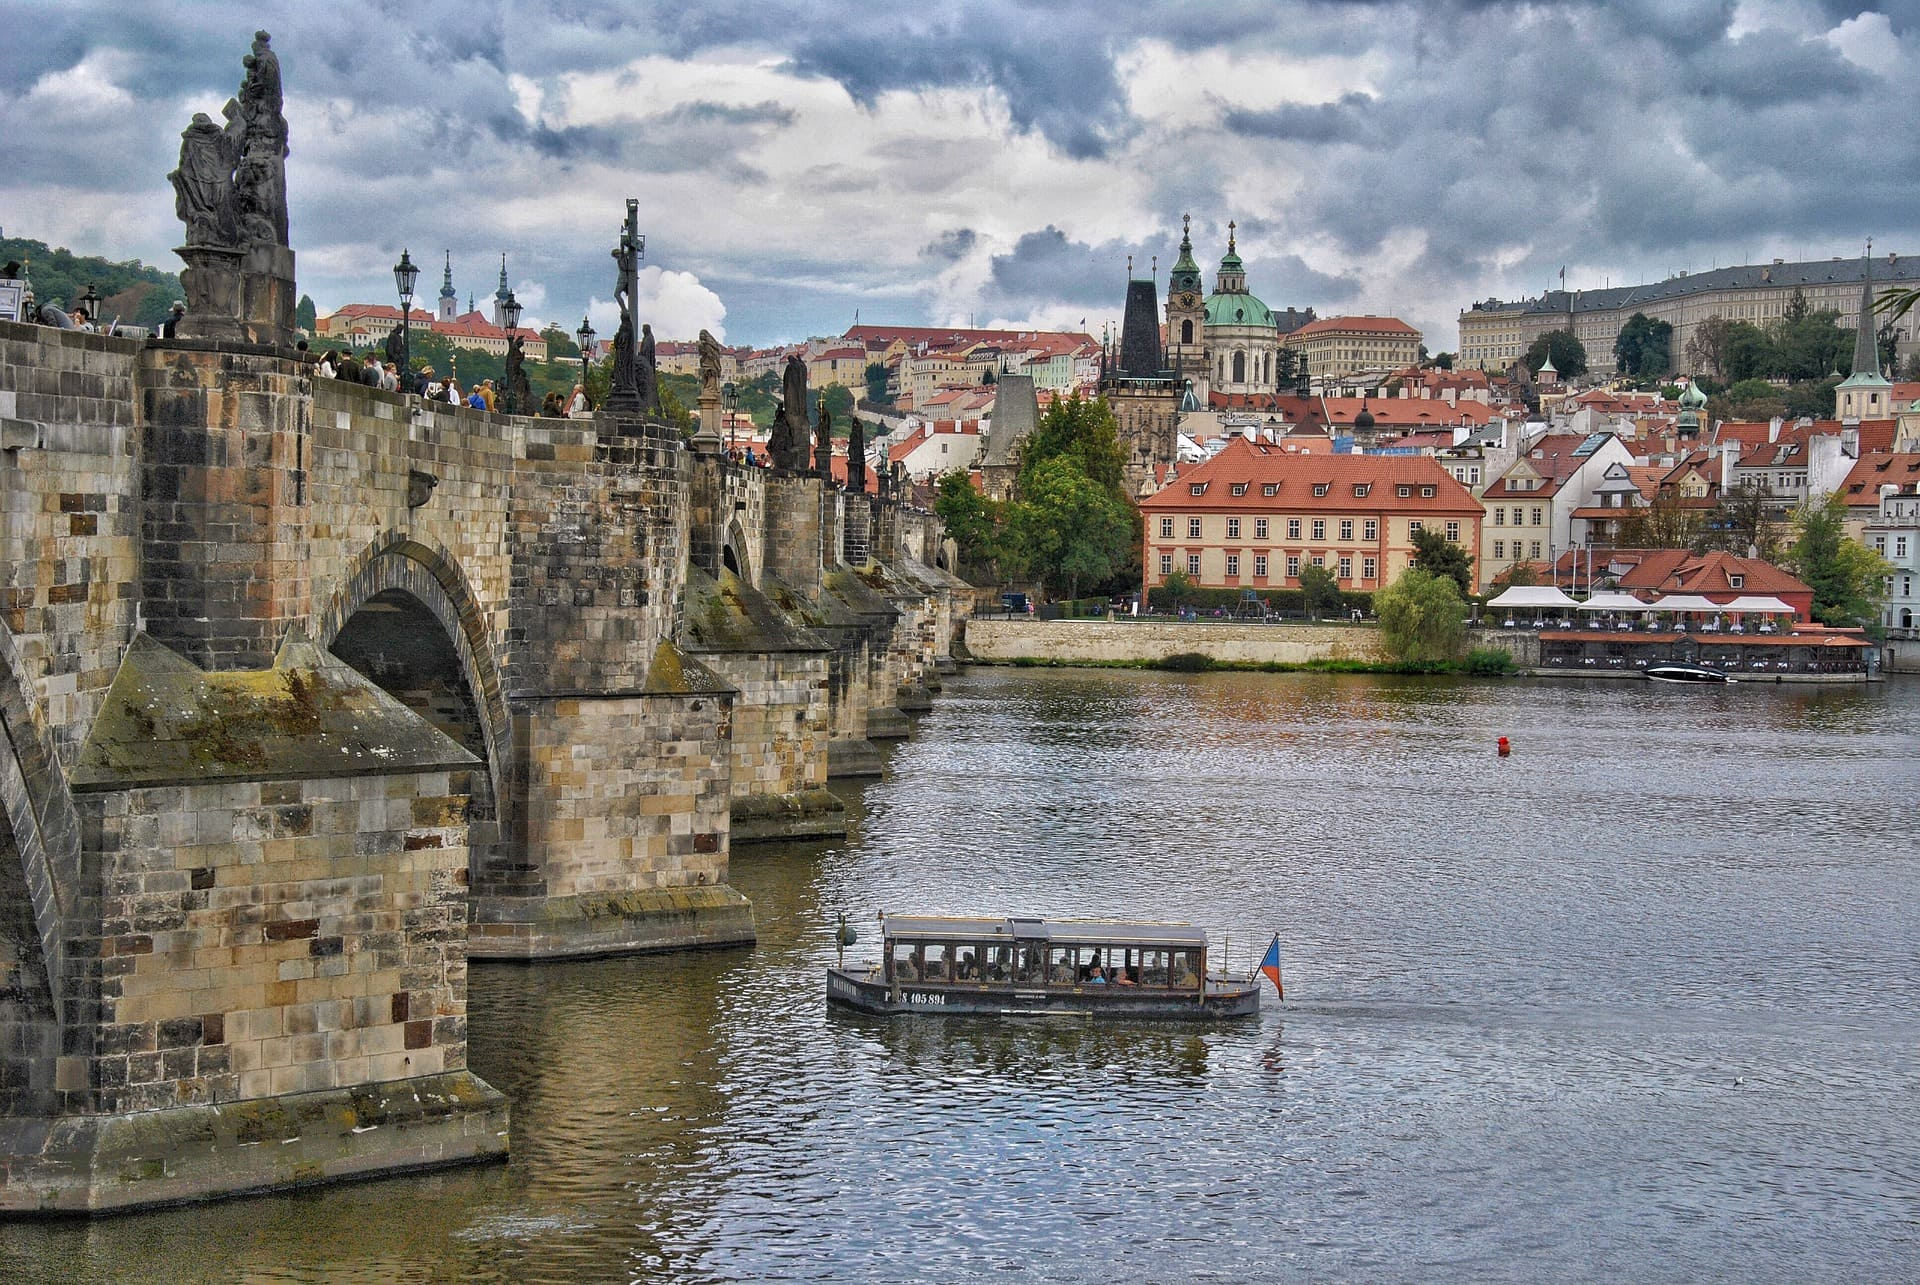 commercial real estate investments in the Czech Republic